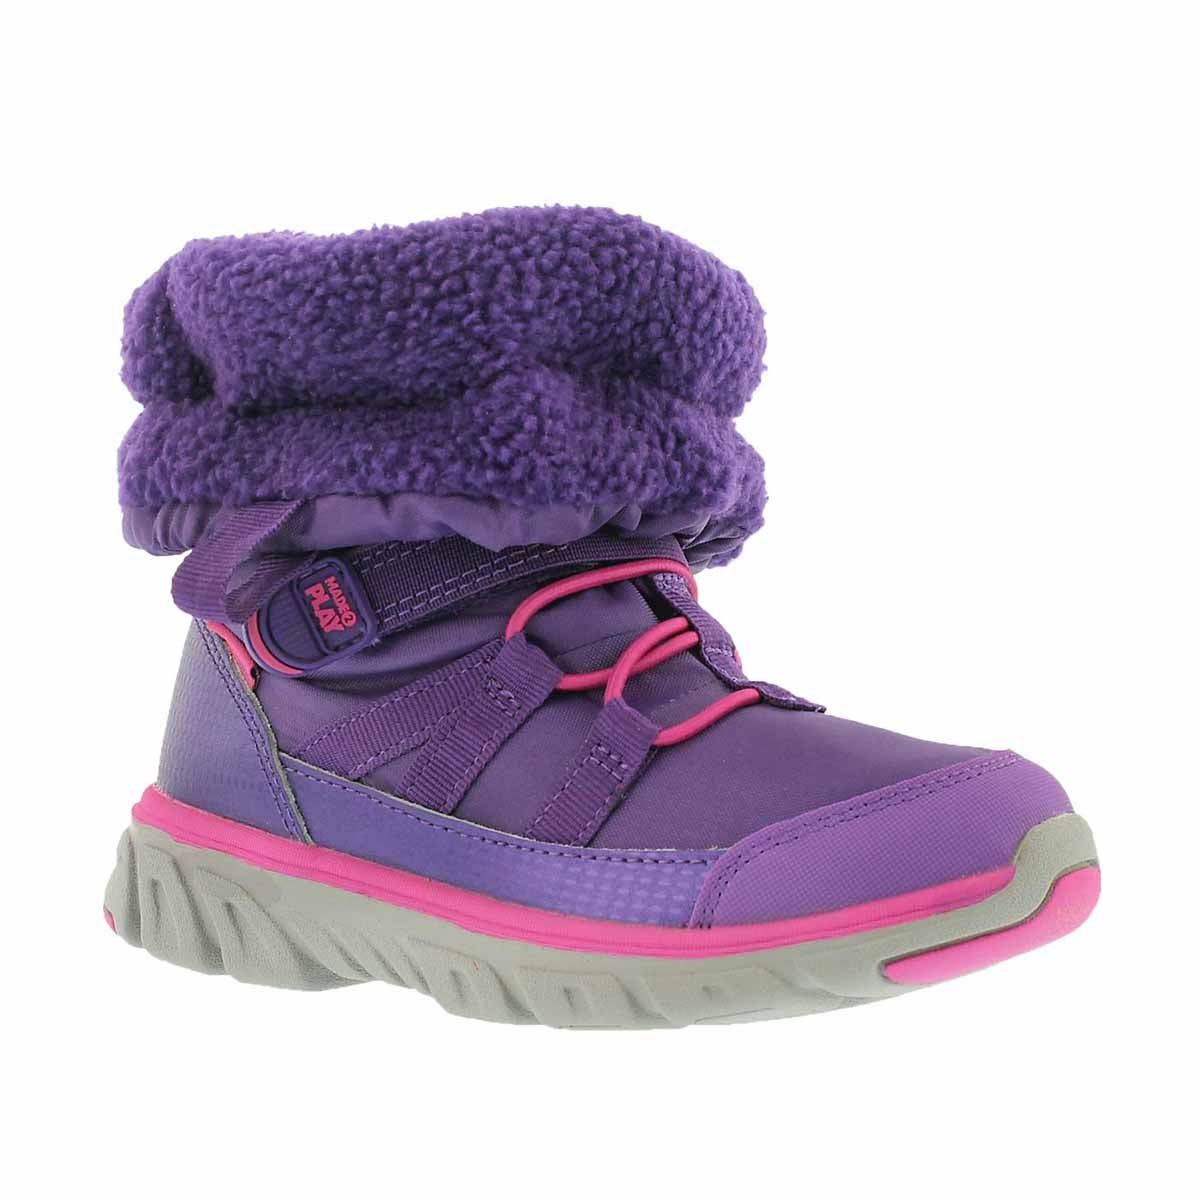 Girls' M2P SNEAKER BOOTS purple winter boots